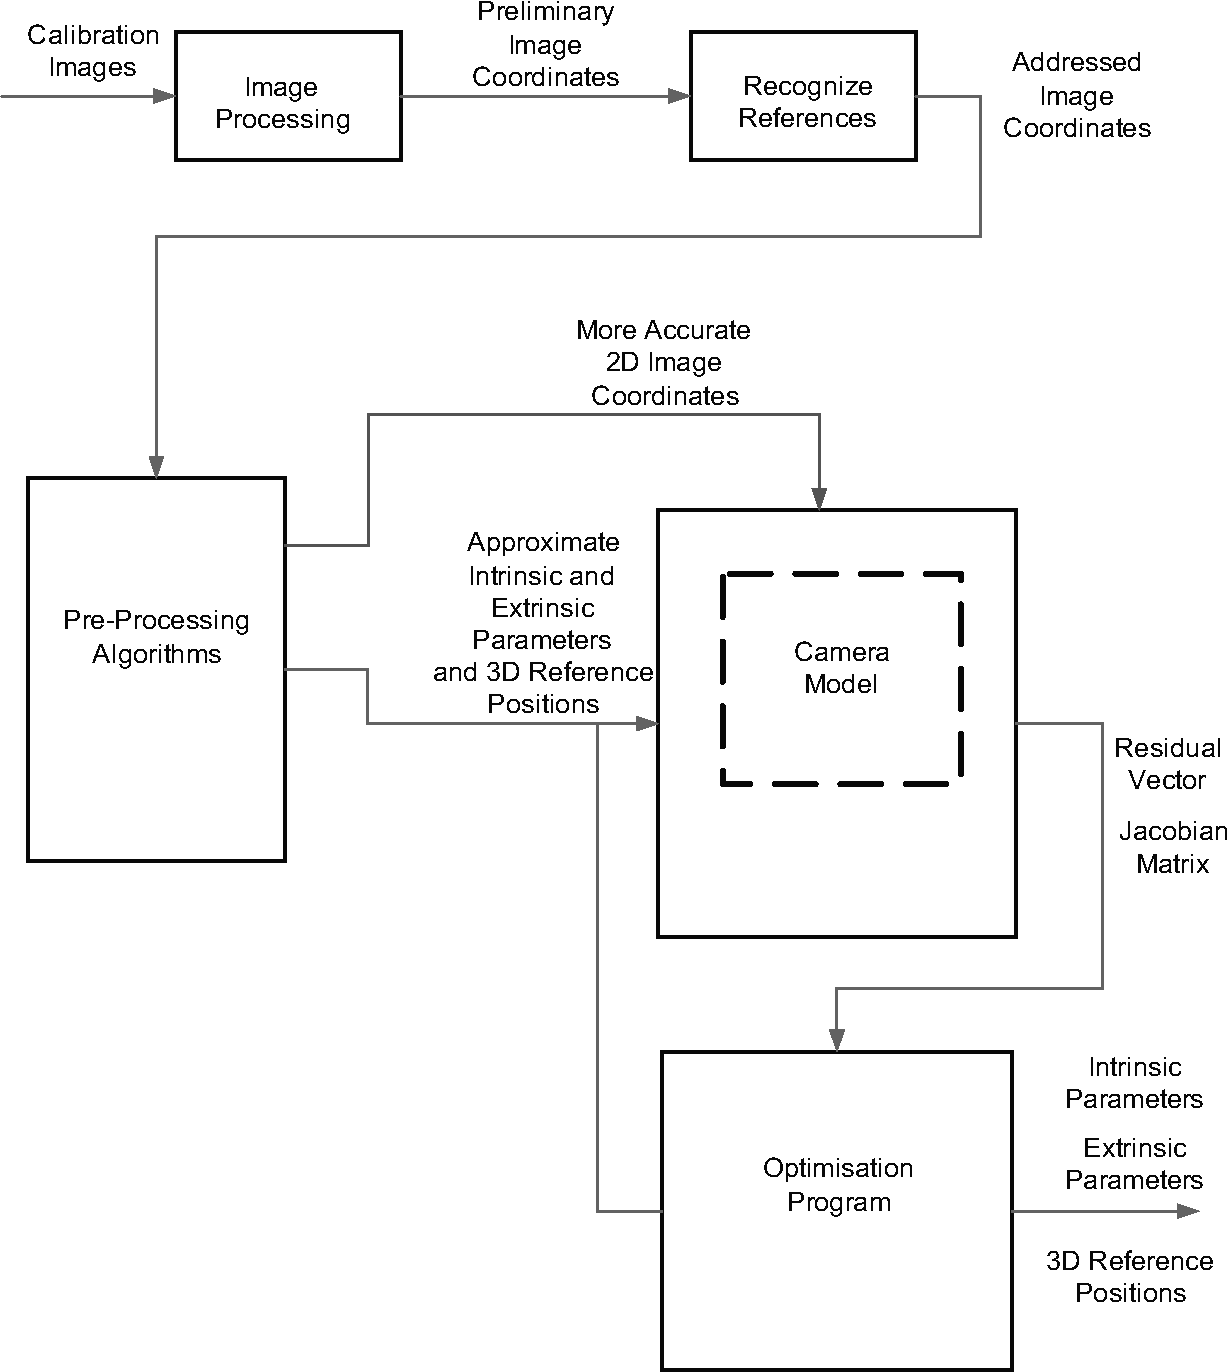 Figure 2.11 from Camera Modelling and Calibration with Machine Vision  Applications   Semantic Scholar [ 1372 x 1228 Pixel ]